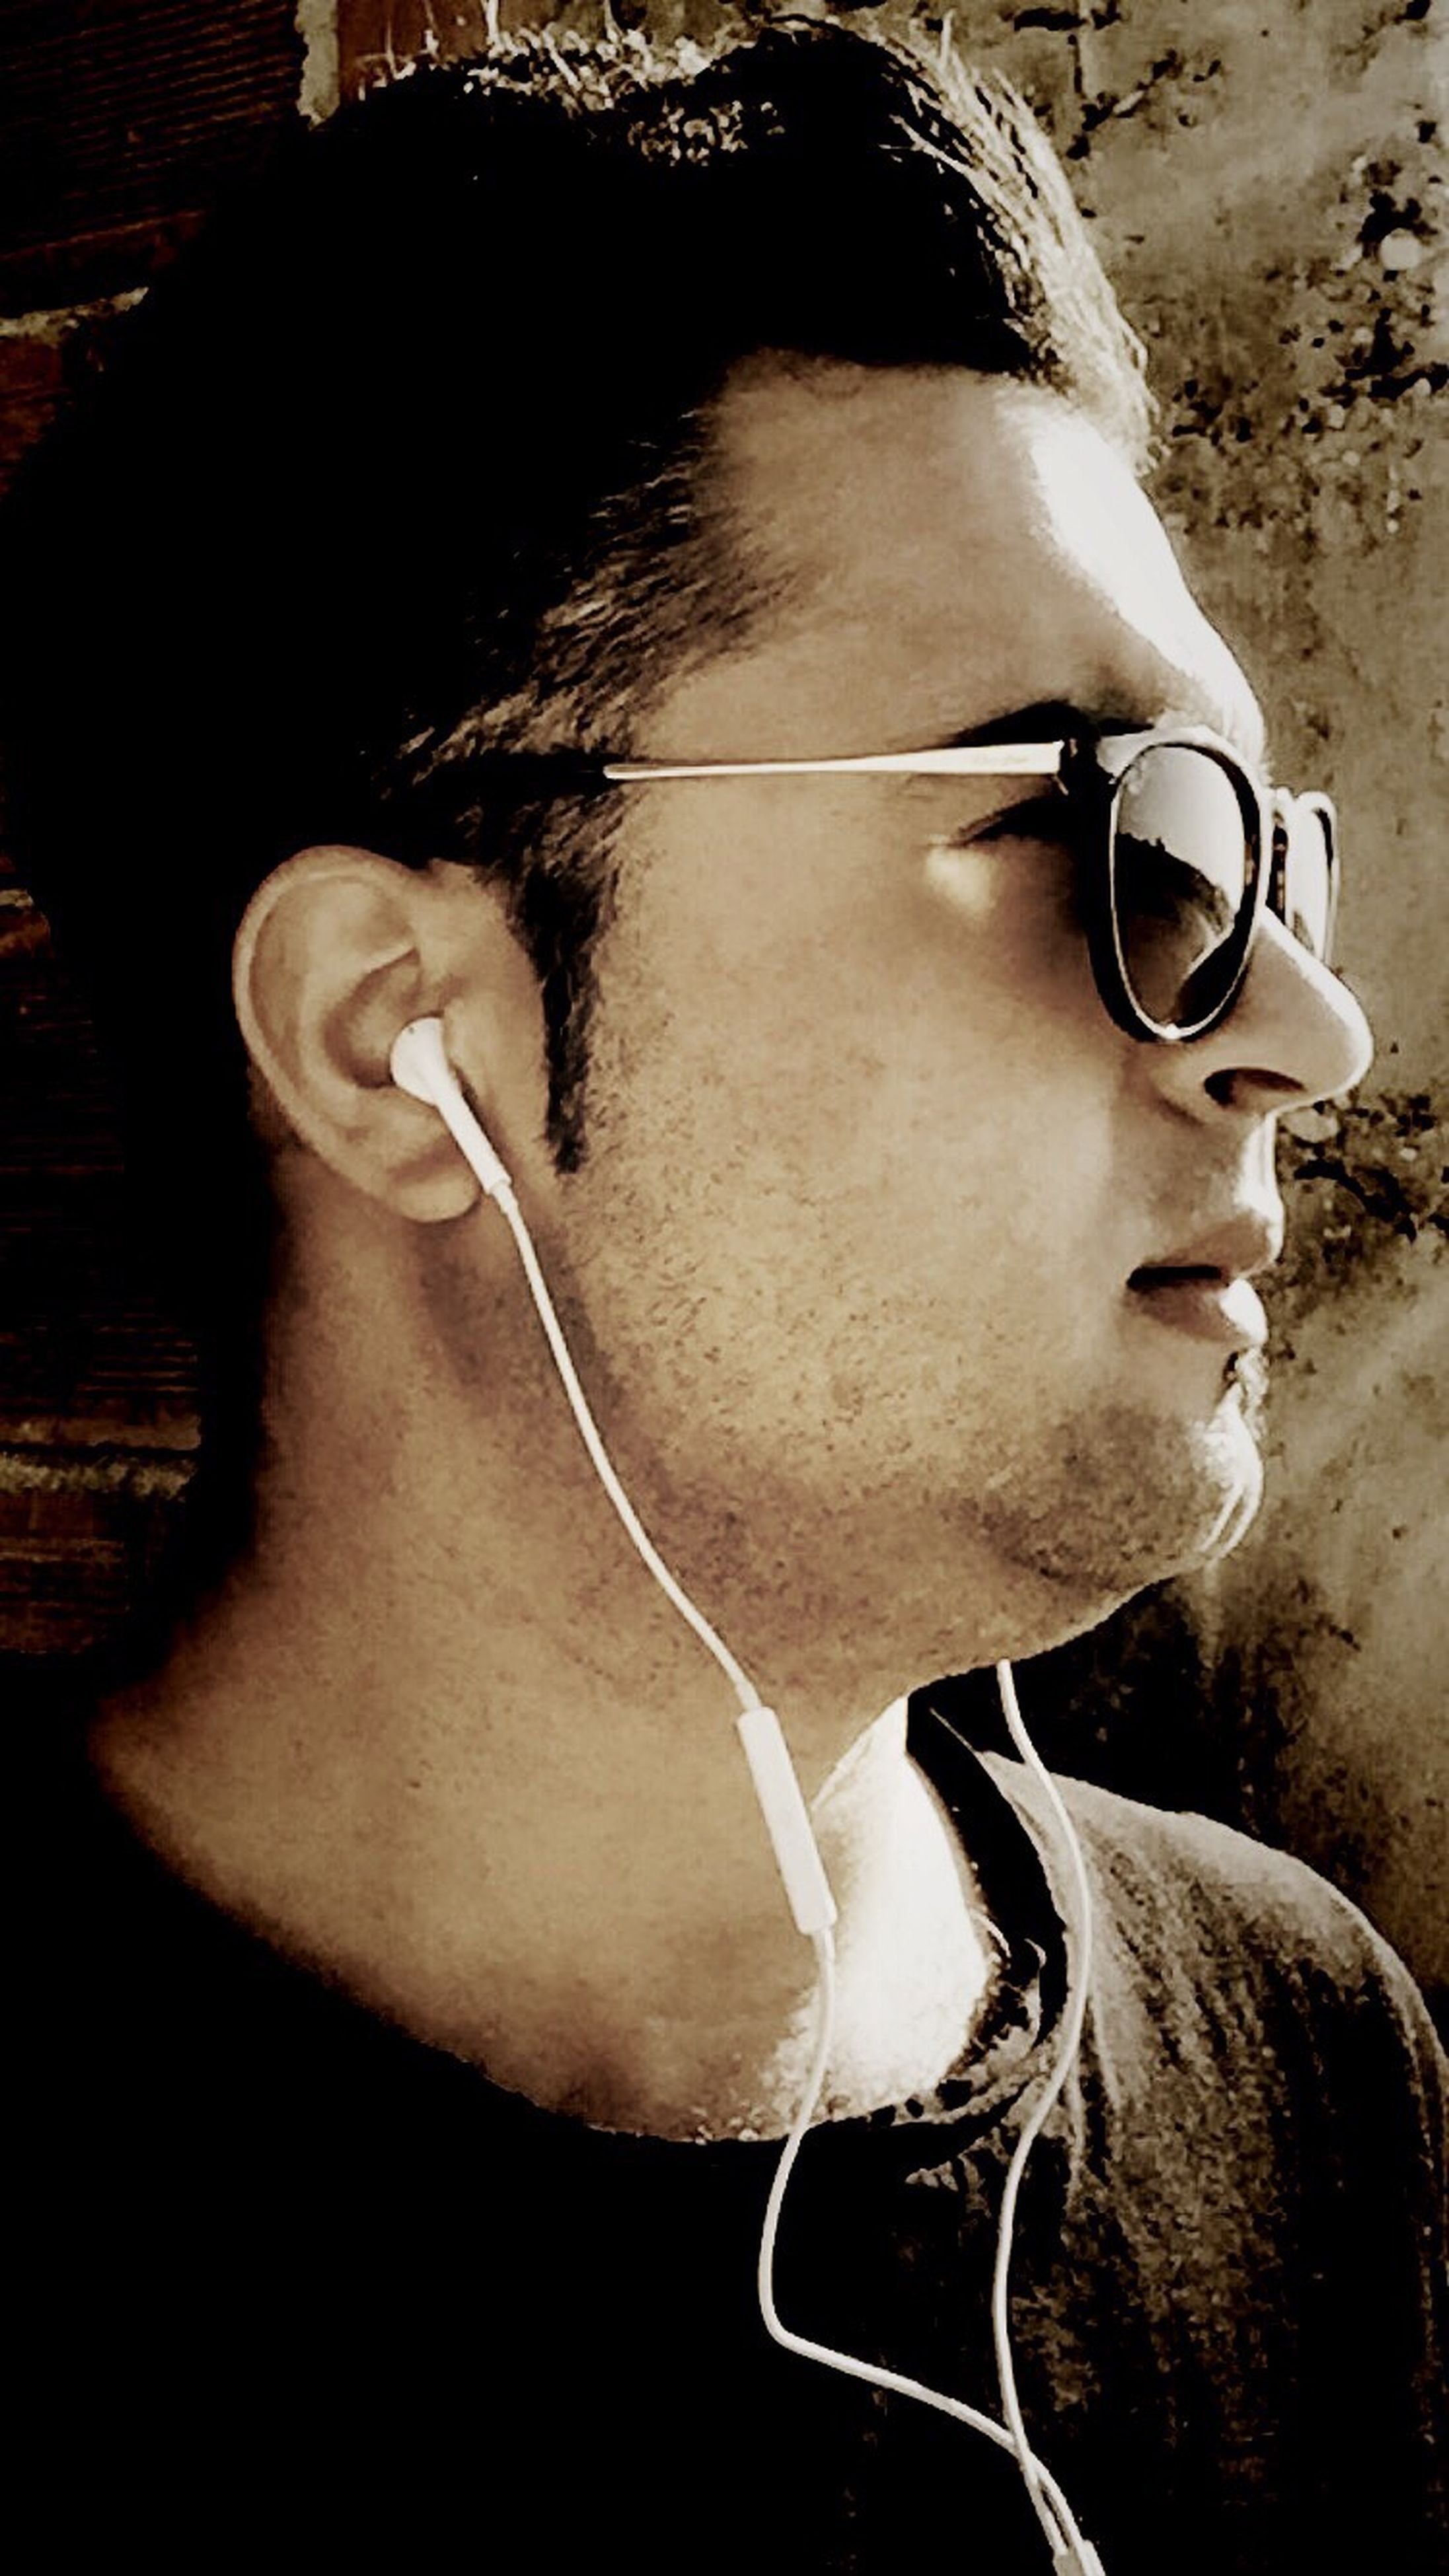 lifestyles, close-up, sunglasses, side view, holding, leisure activity, sunlight, young adult, men, front view, part of, person, headshot, cropped, outdoors, shadow, day